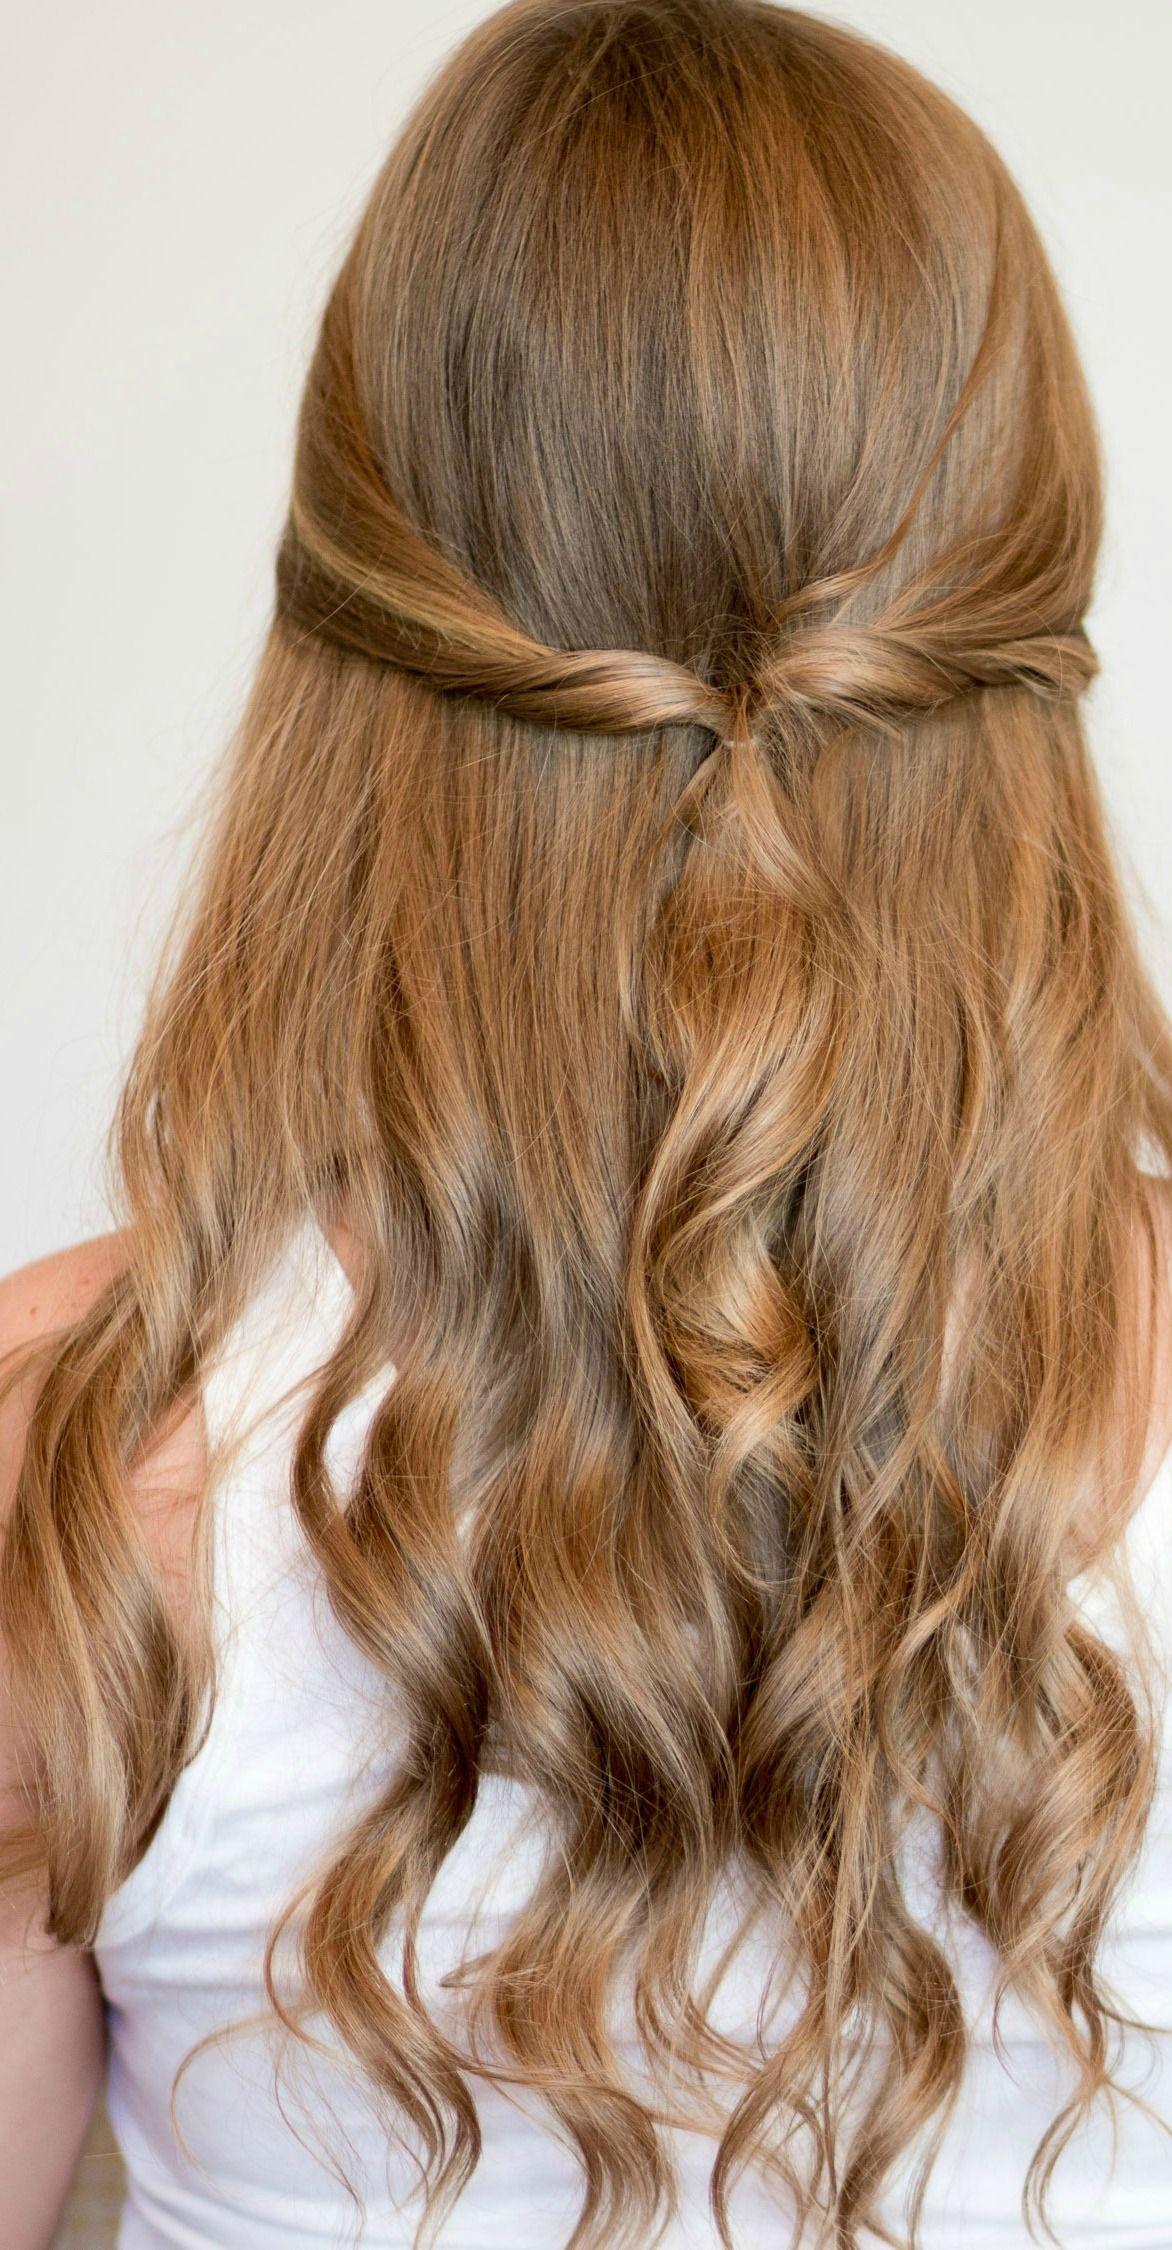 Easy Heatless Hair Styles for Long Hair